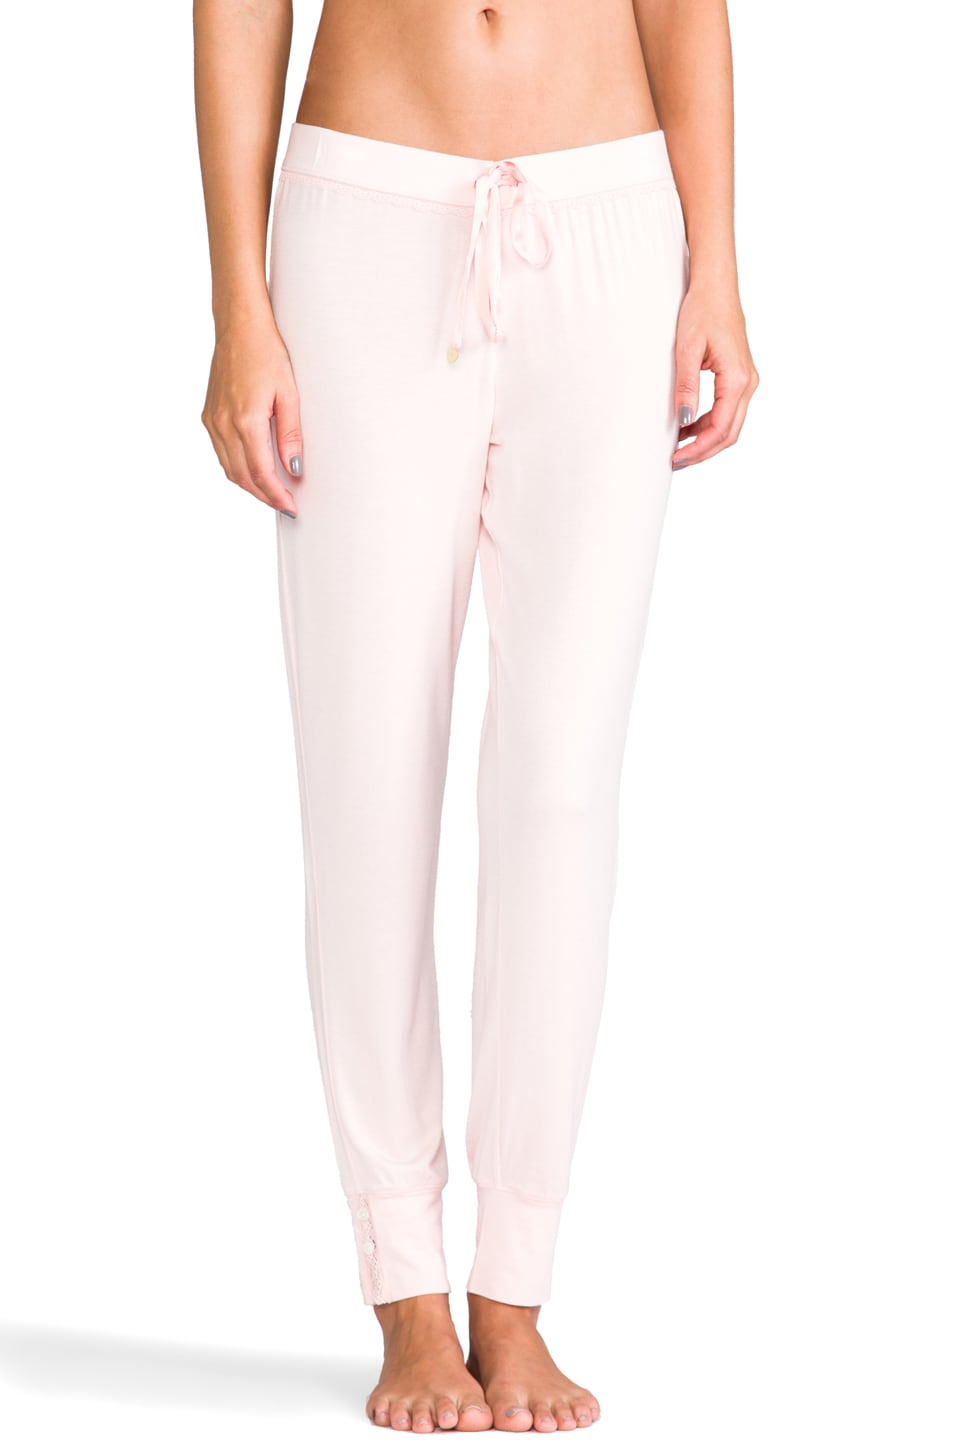 Juicy Couture Slim Leg Pant /w Lace Detail in Petal Pink